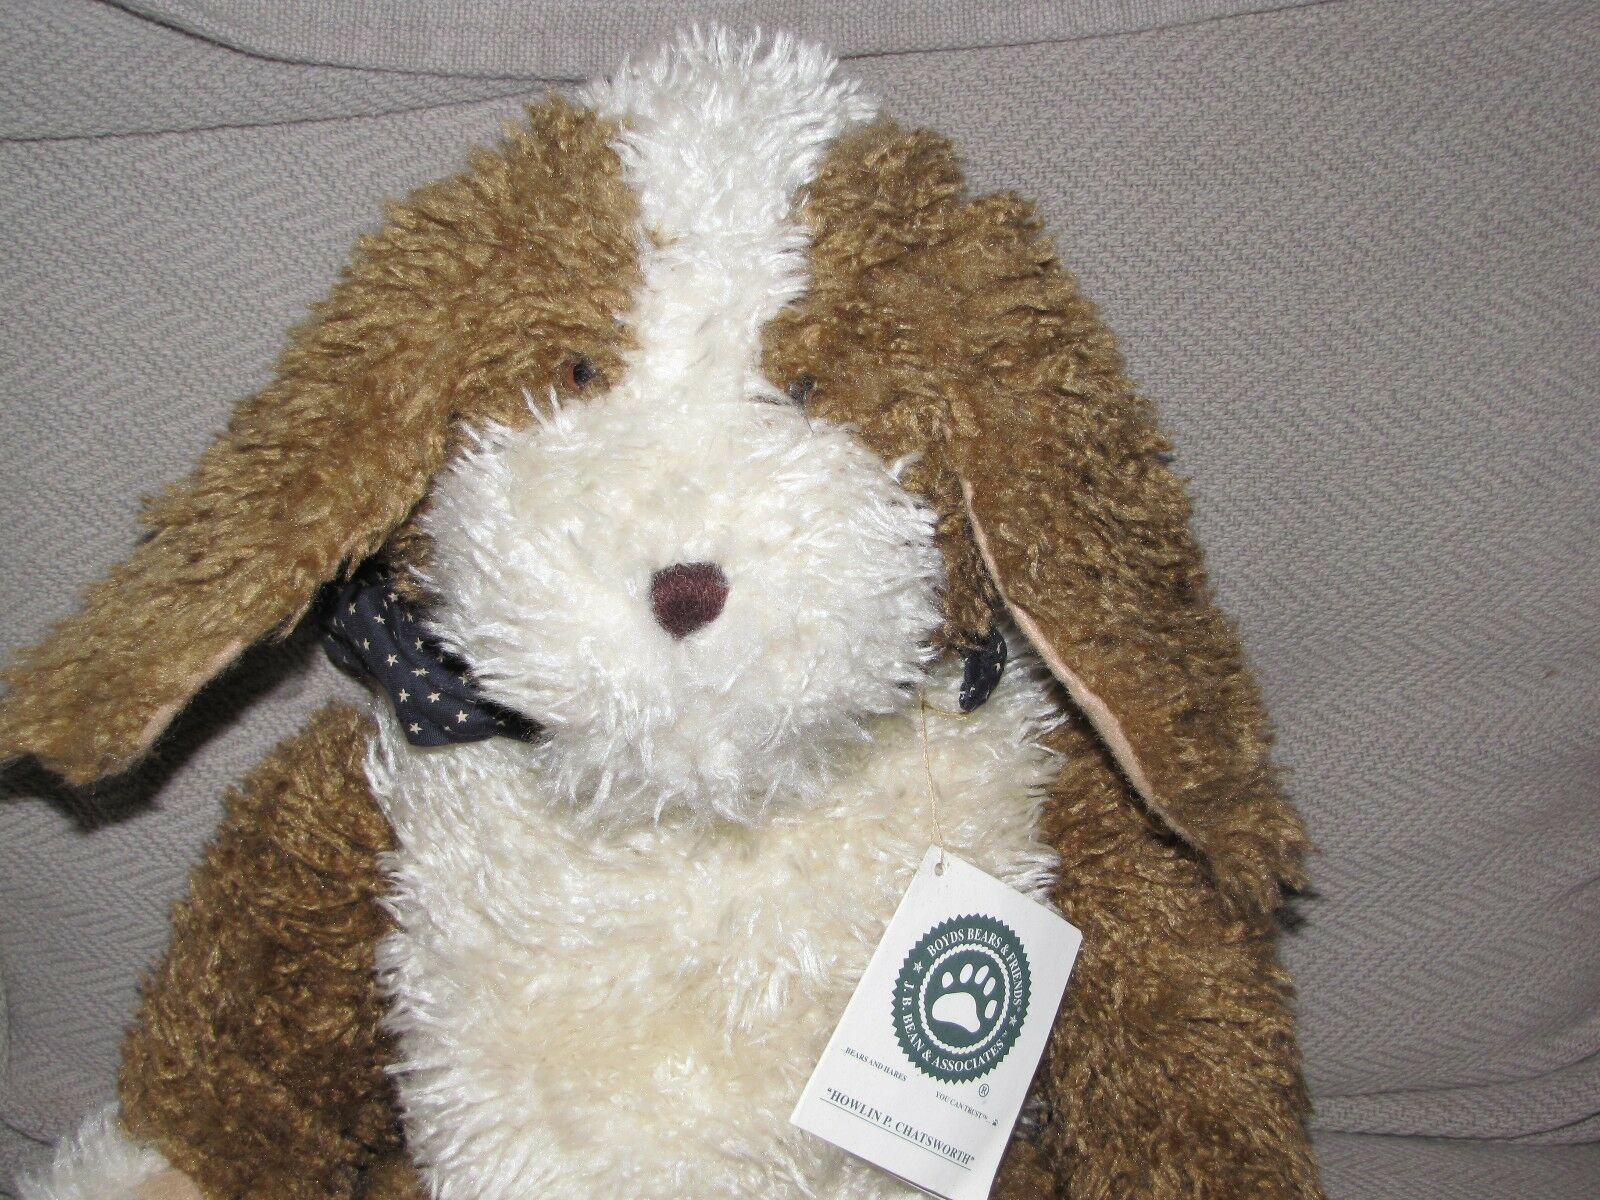 BOYDS BOYD'S BEARS STUFFED PLUSH DOG HOWLIN P CHATSWORTH HAND HAND HAND PUPPET braun CREAM 6f50aa